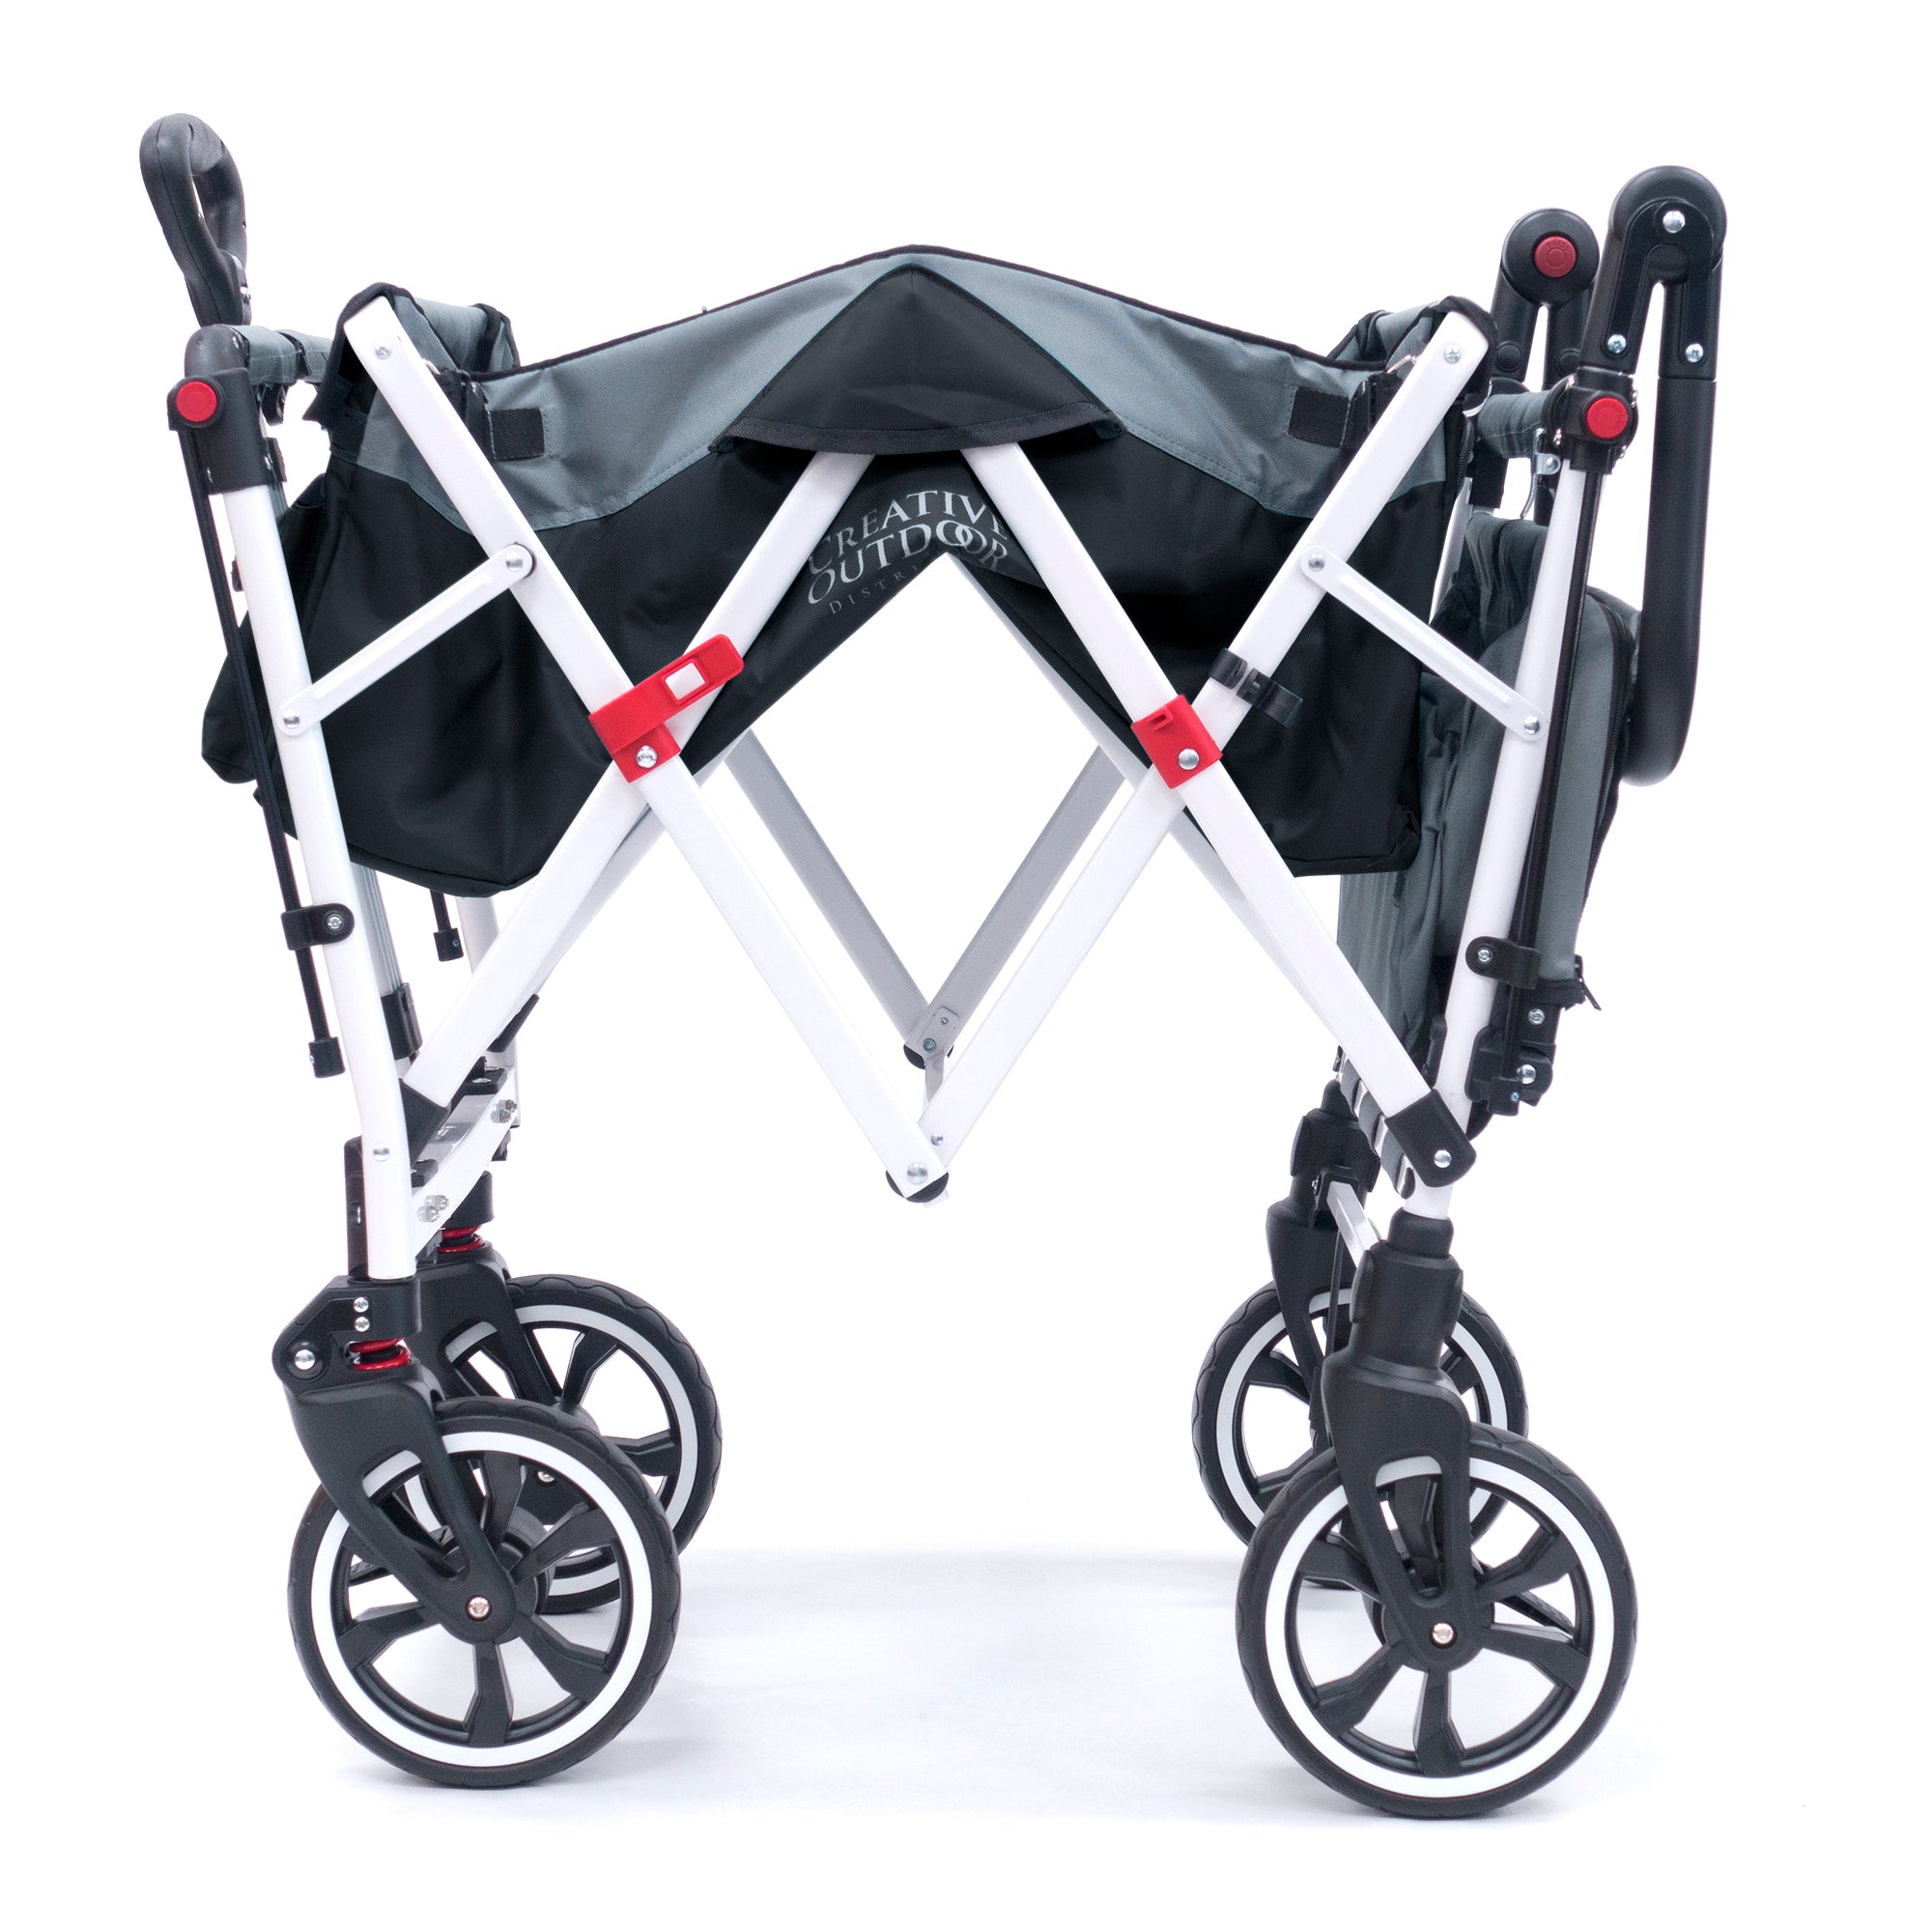 Push Pull TITANIUM SERIES PLUS Folding Wagon Stroller with Canopy | Black